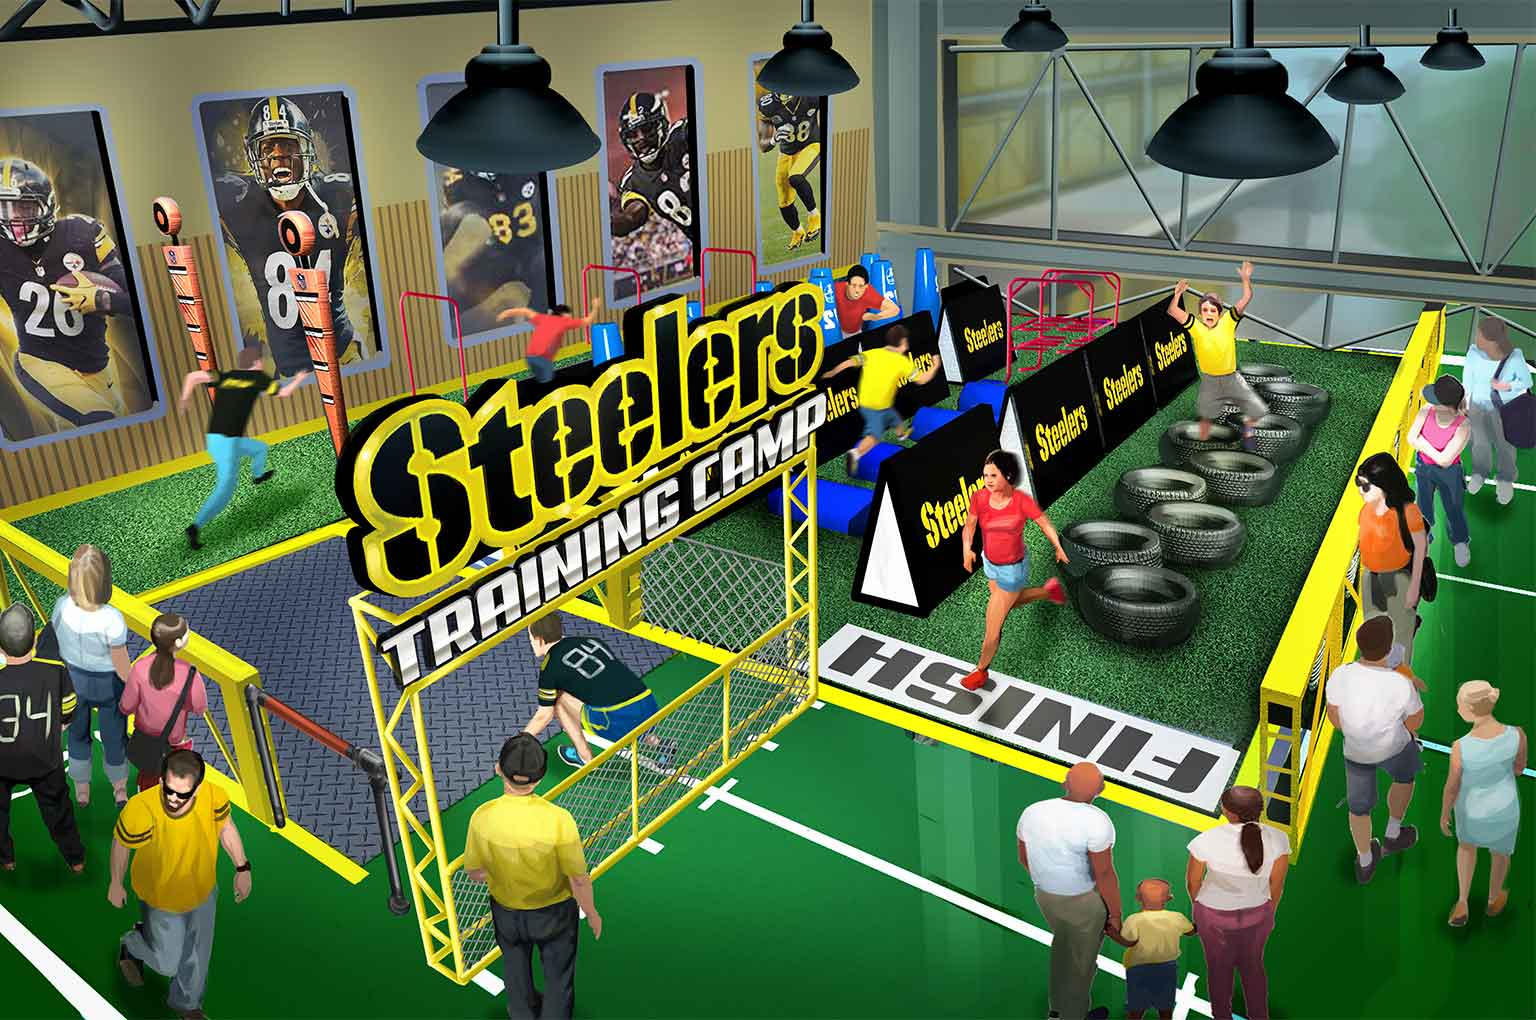 Steelers Country theme park design